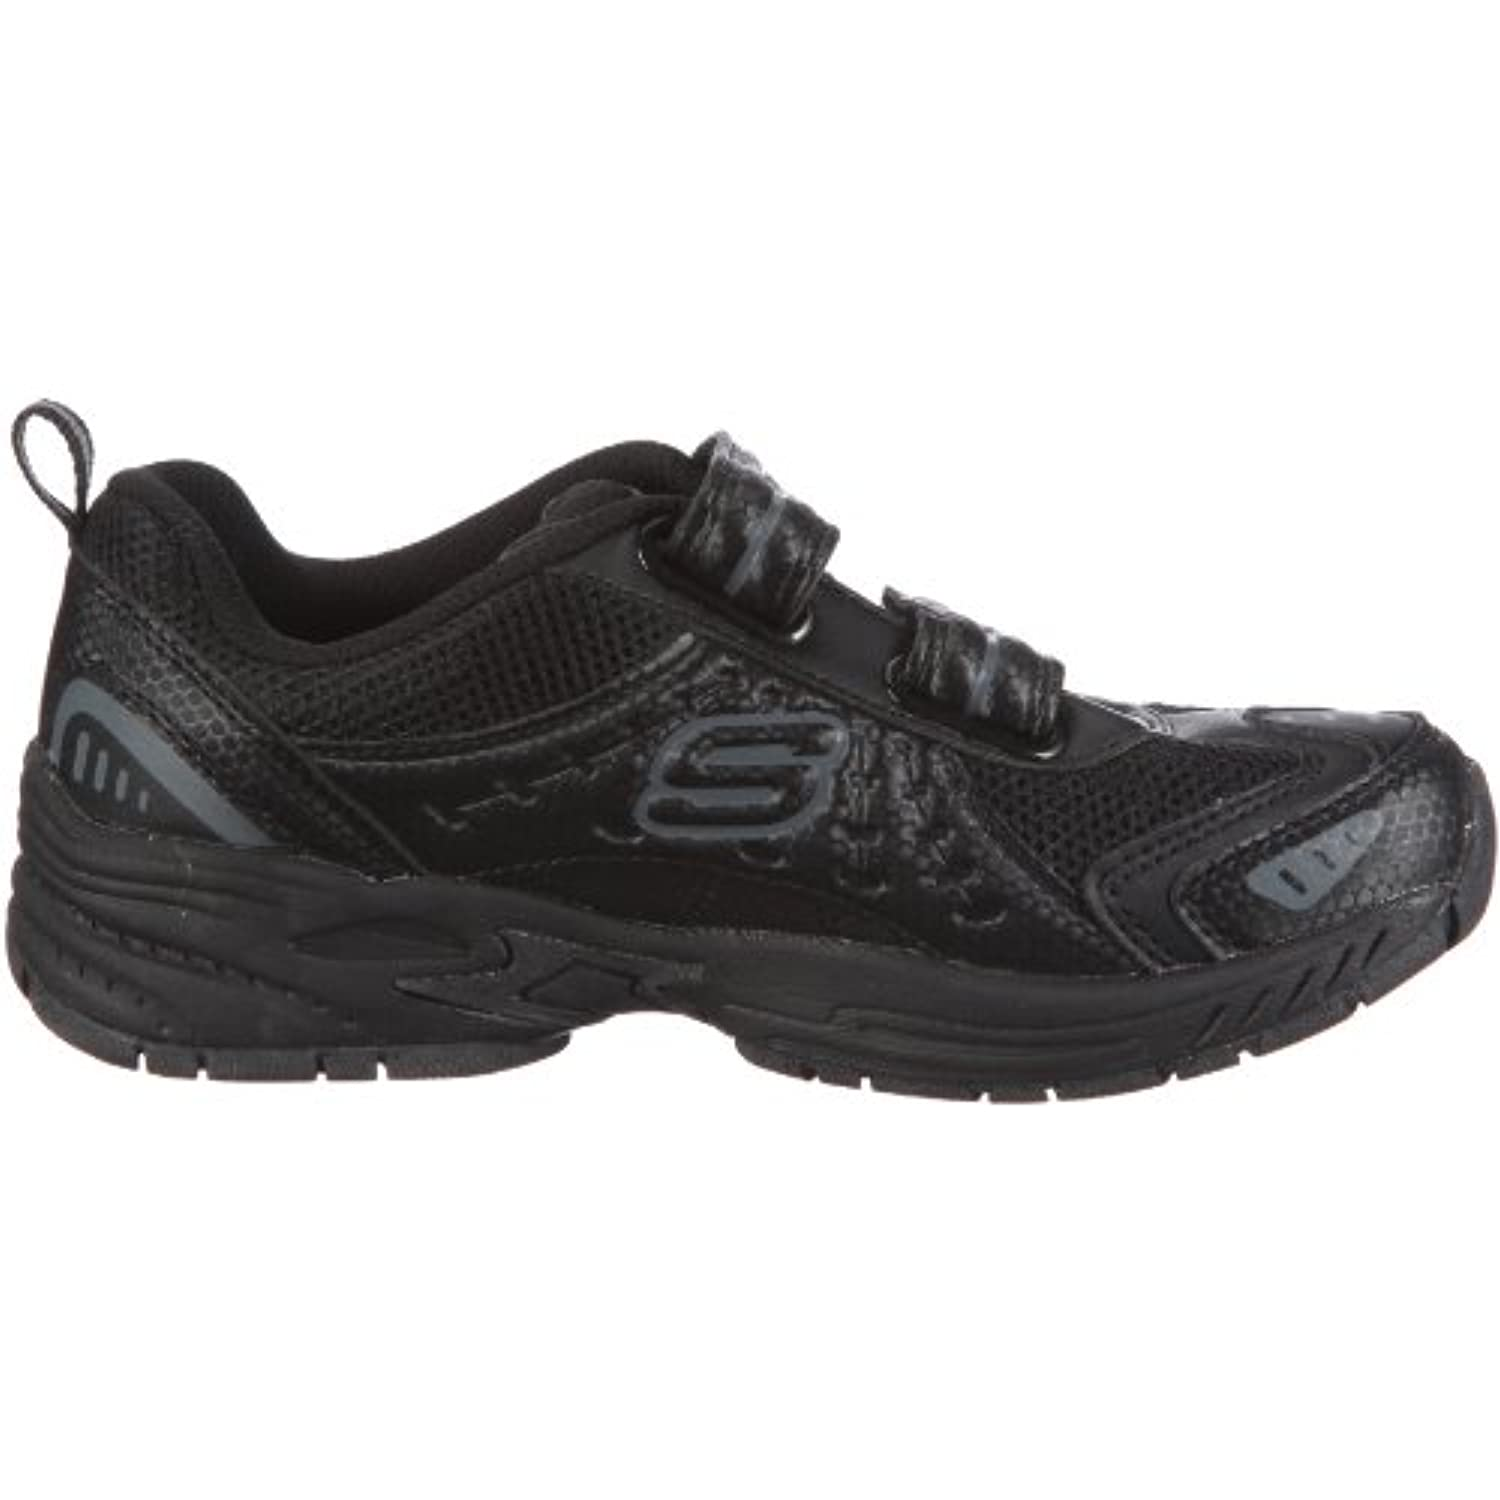 Skechers Good Sports Sanction 998009L Boys Sneakers, Black - Child 11 UK (28.5 EU)